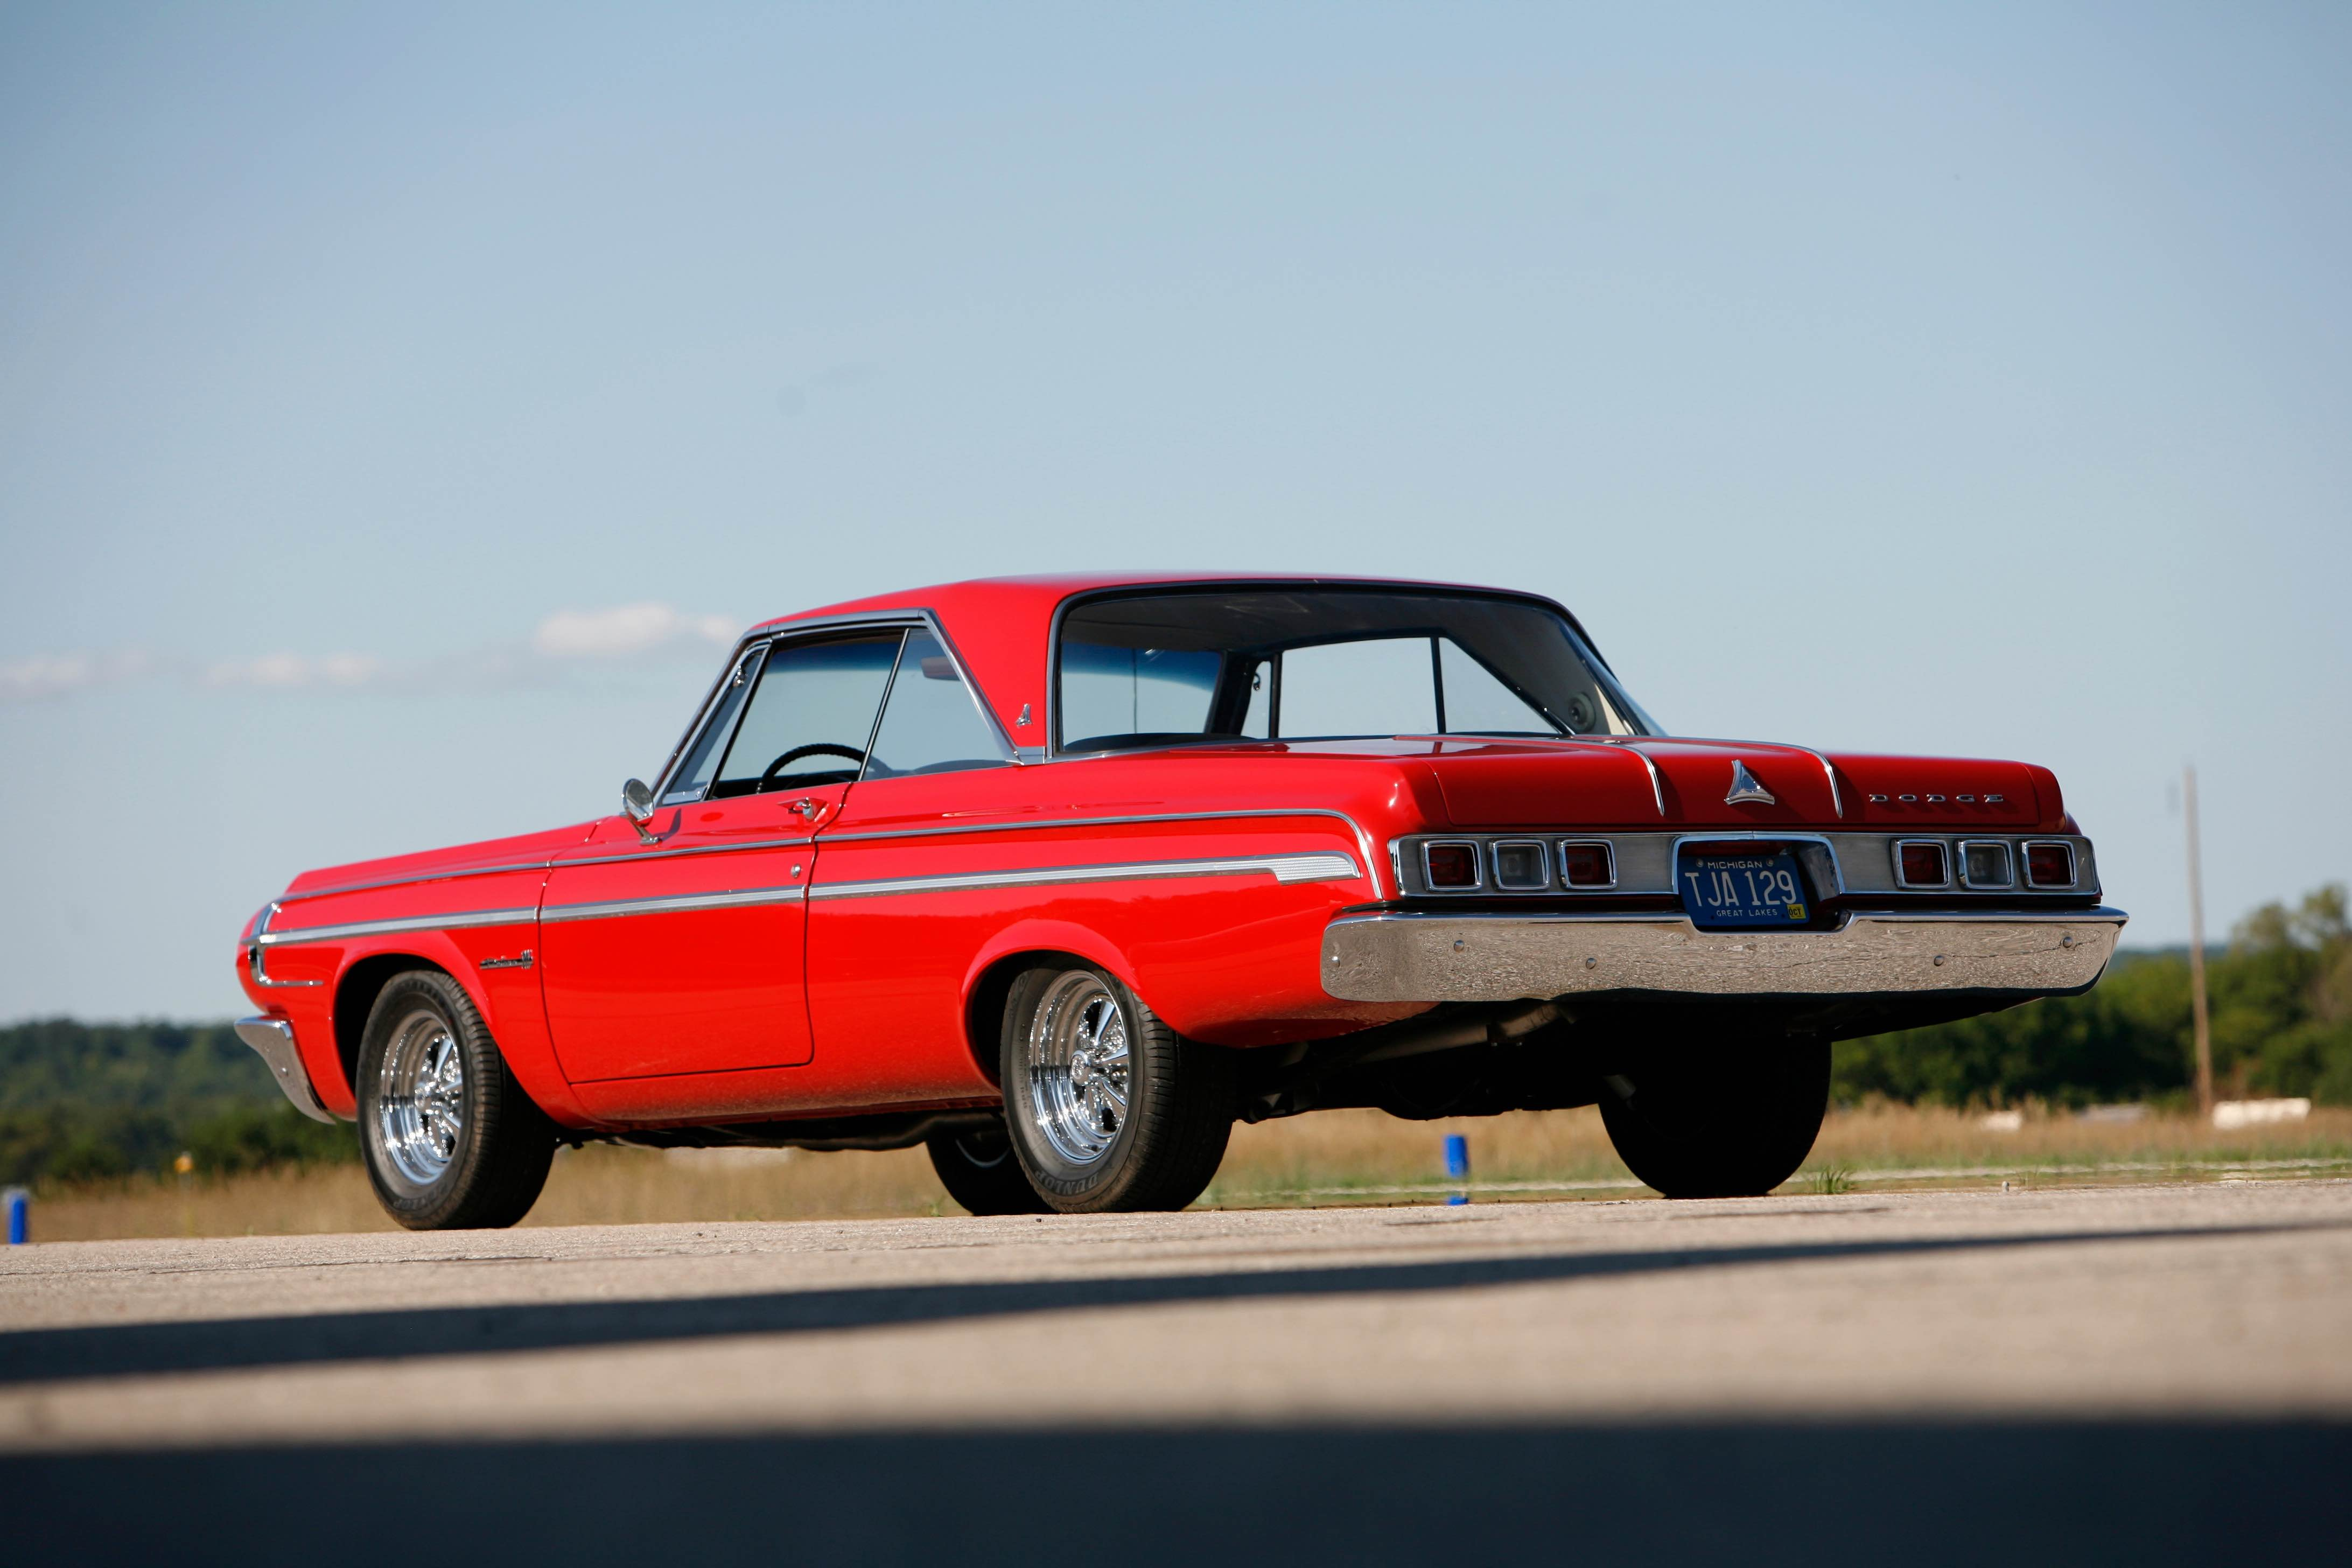 1964 Dodge Polara with Cragar S/S wheels